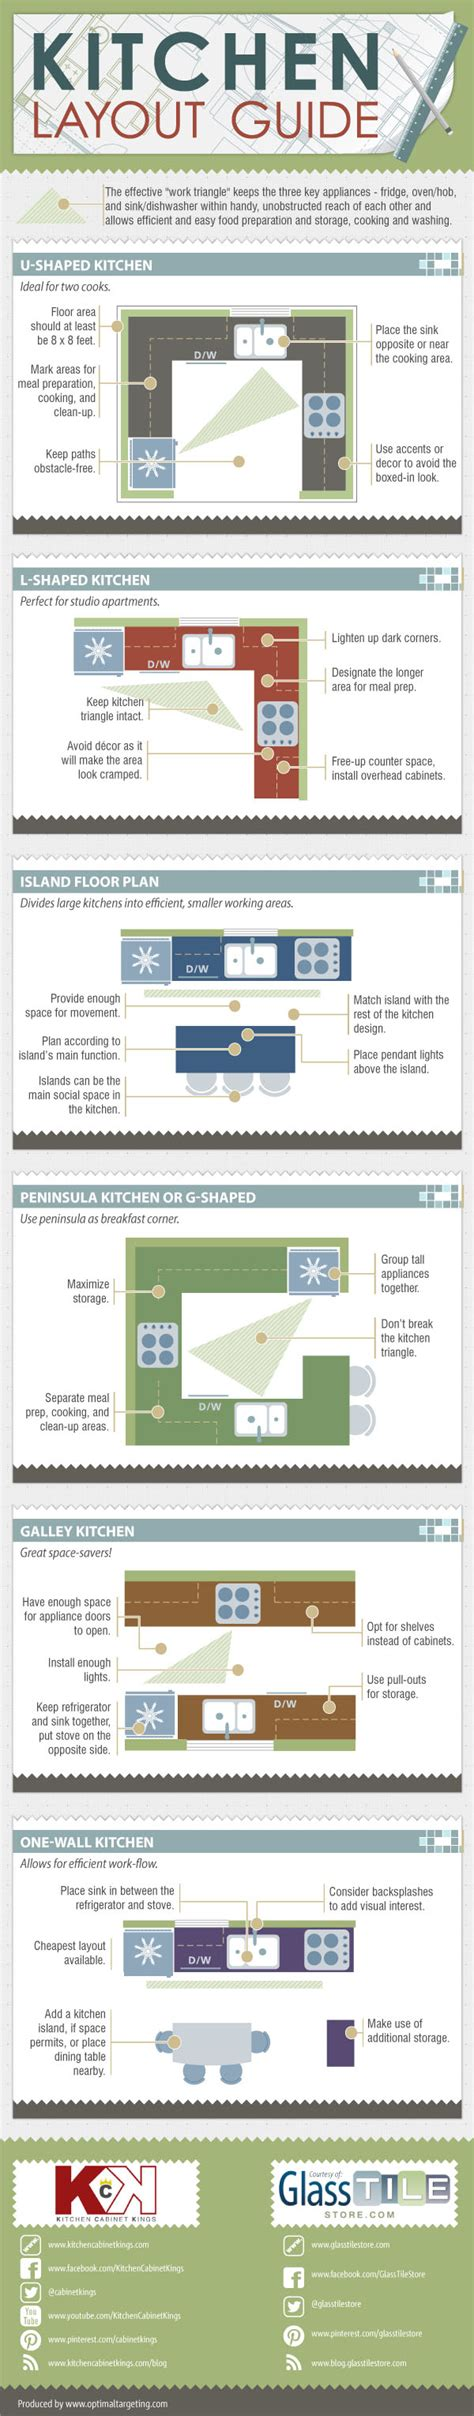 kitchen layout how to choose a kitchen layout based on the fridge oven